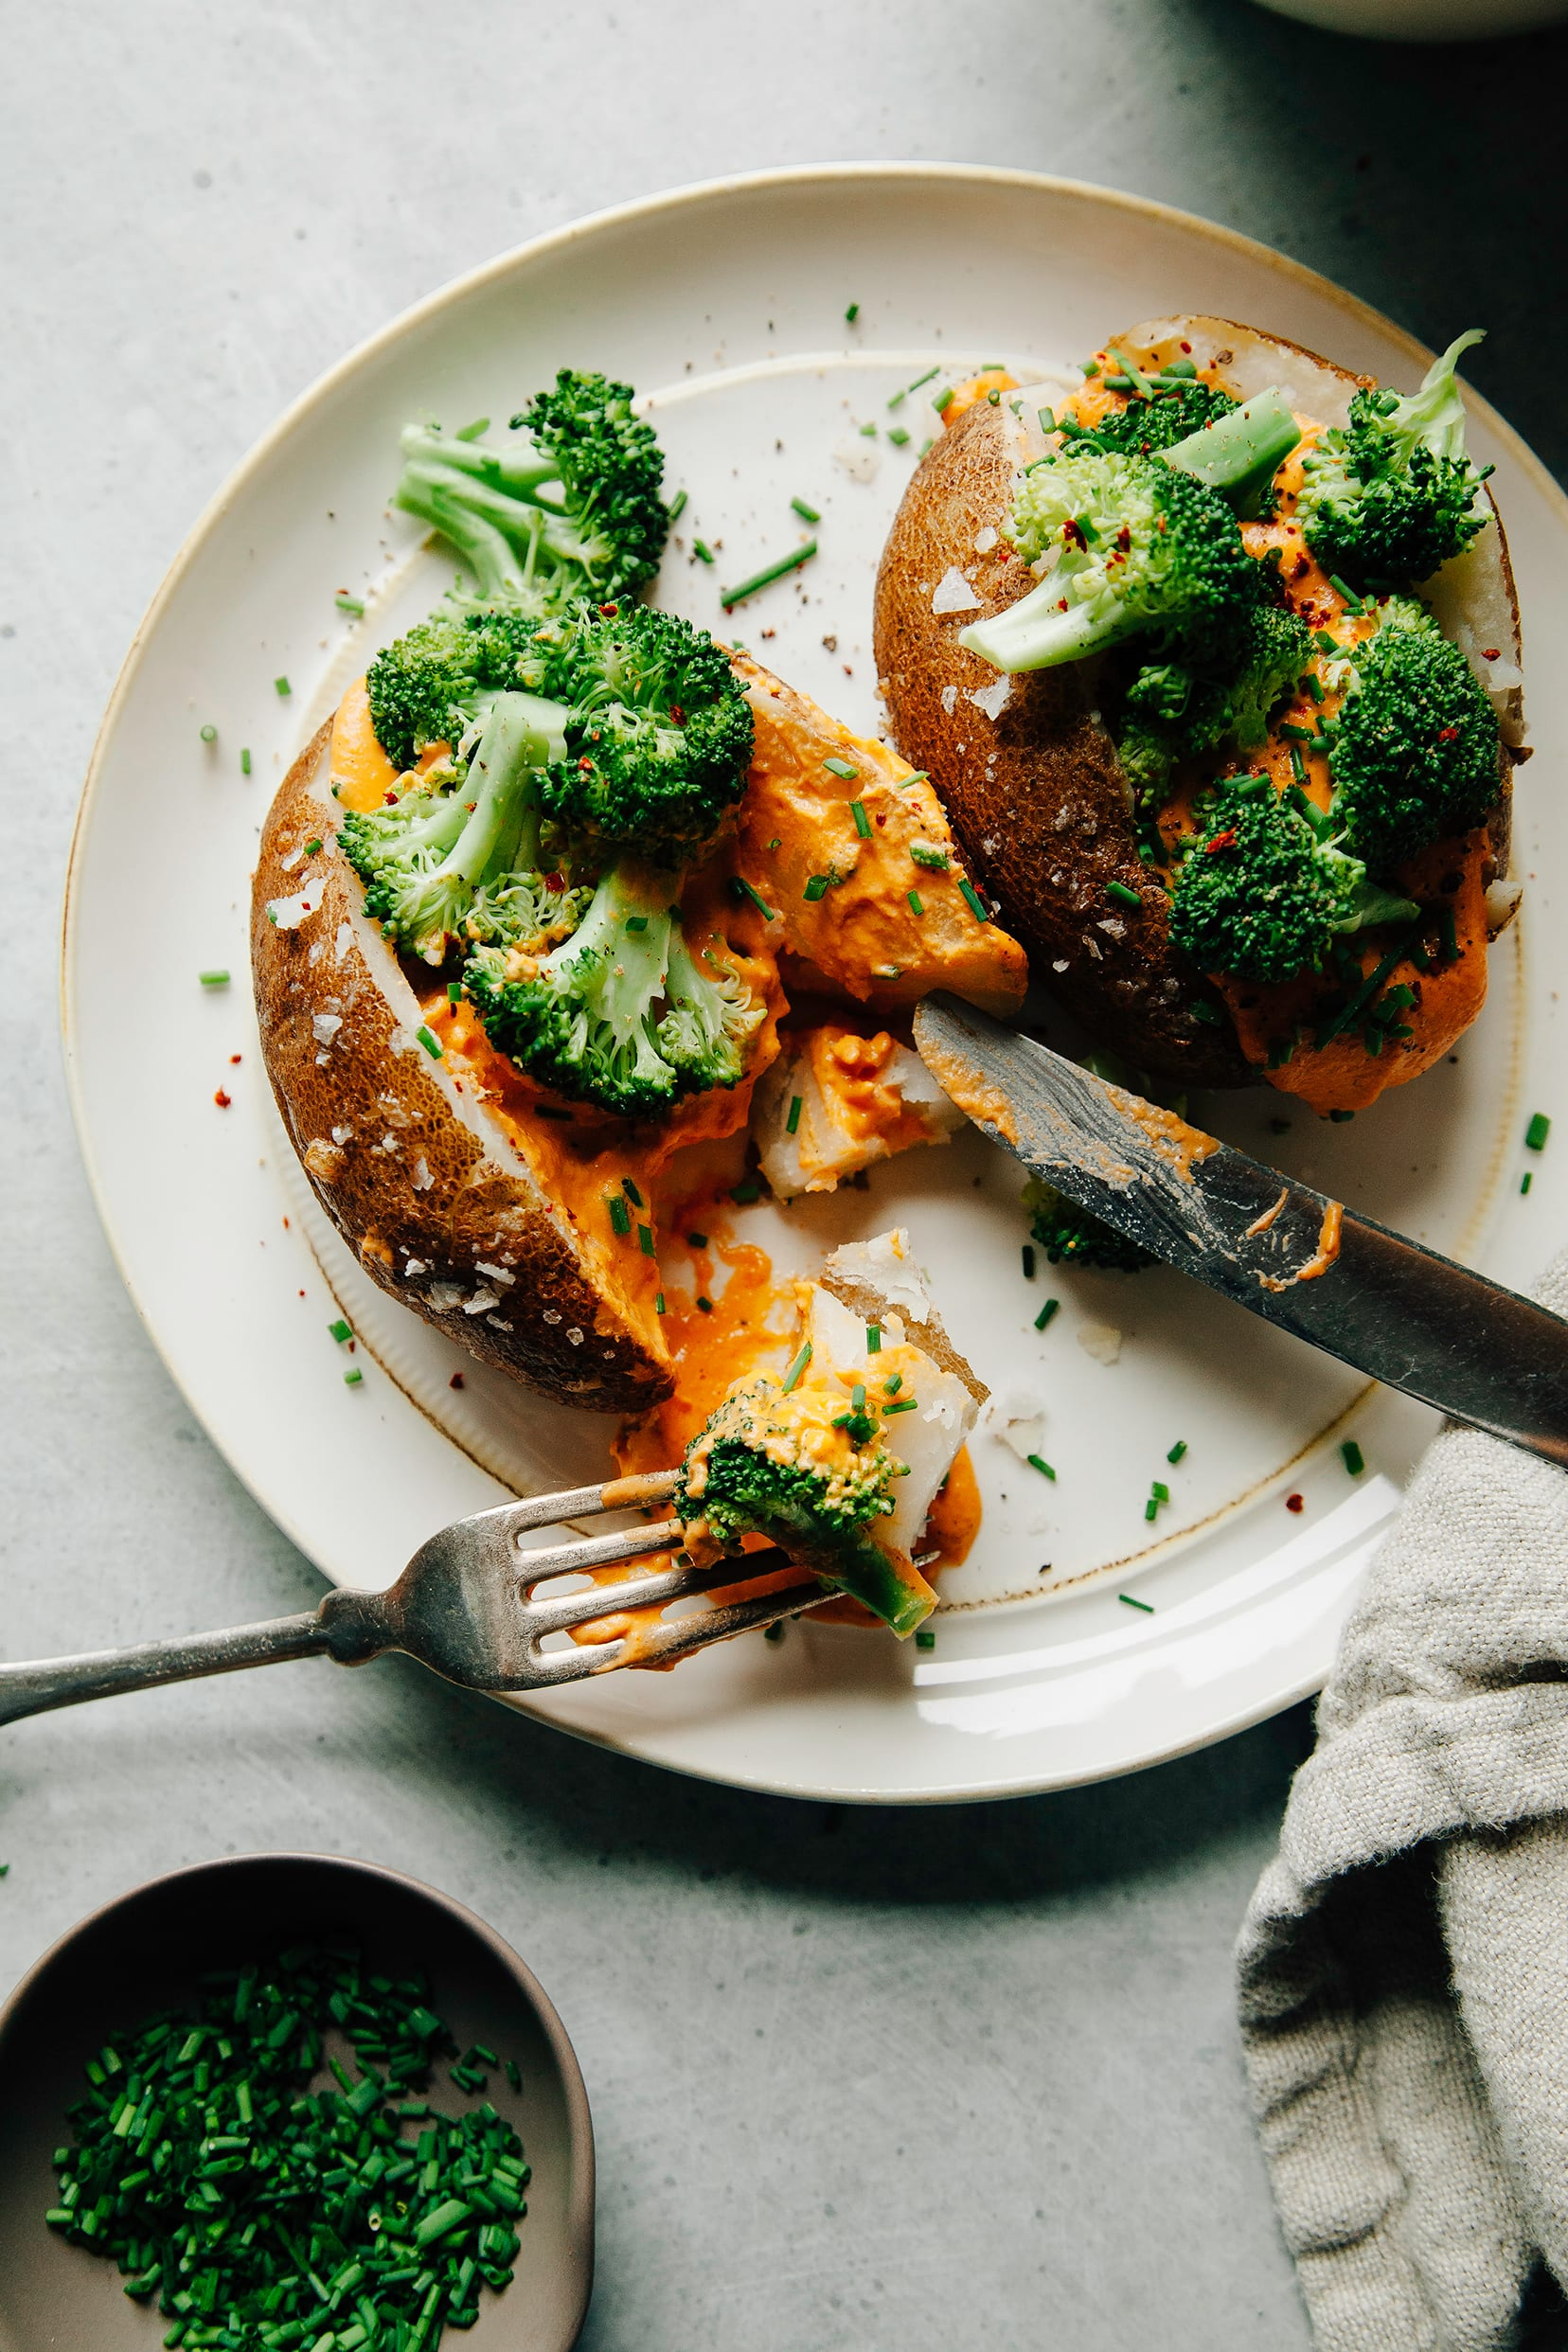 SALT-BAKED POTATOES WITH CHEESY ROASTED RED PEPPER SAUCE & BROCCOLI (vegan, nut-free) - The First Mess